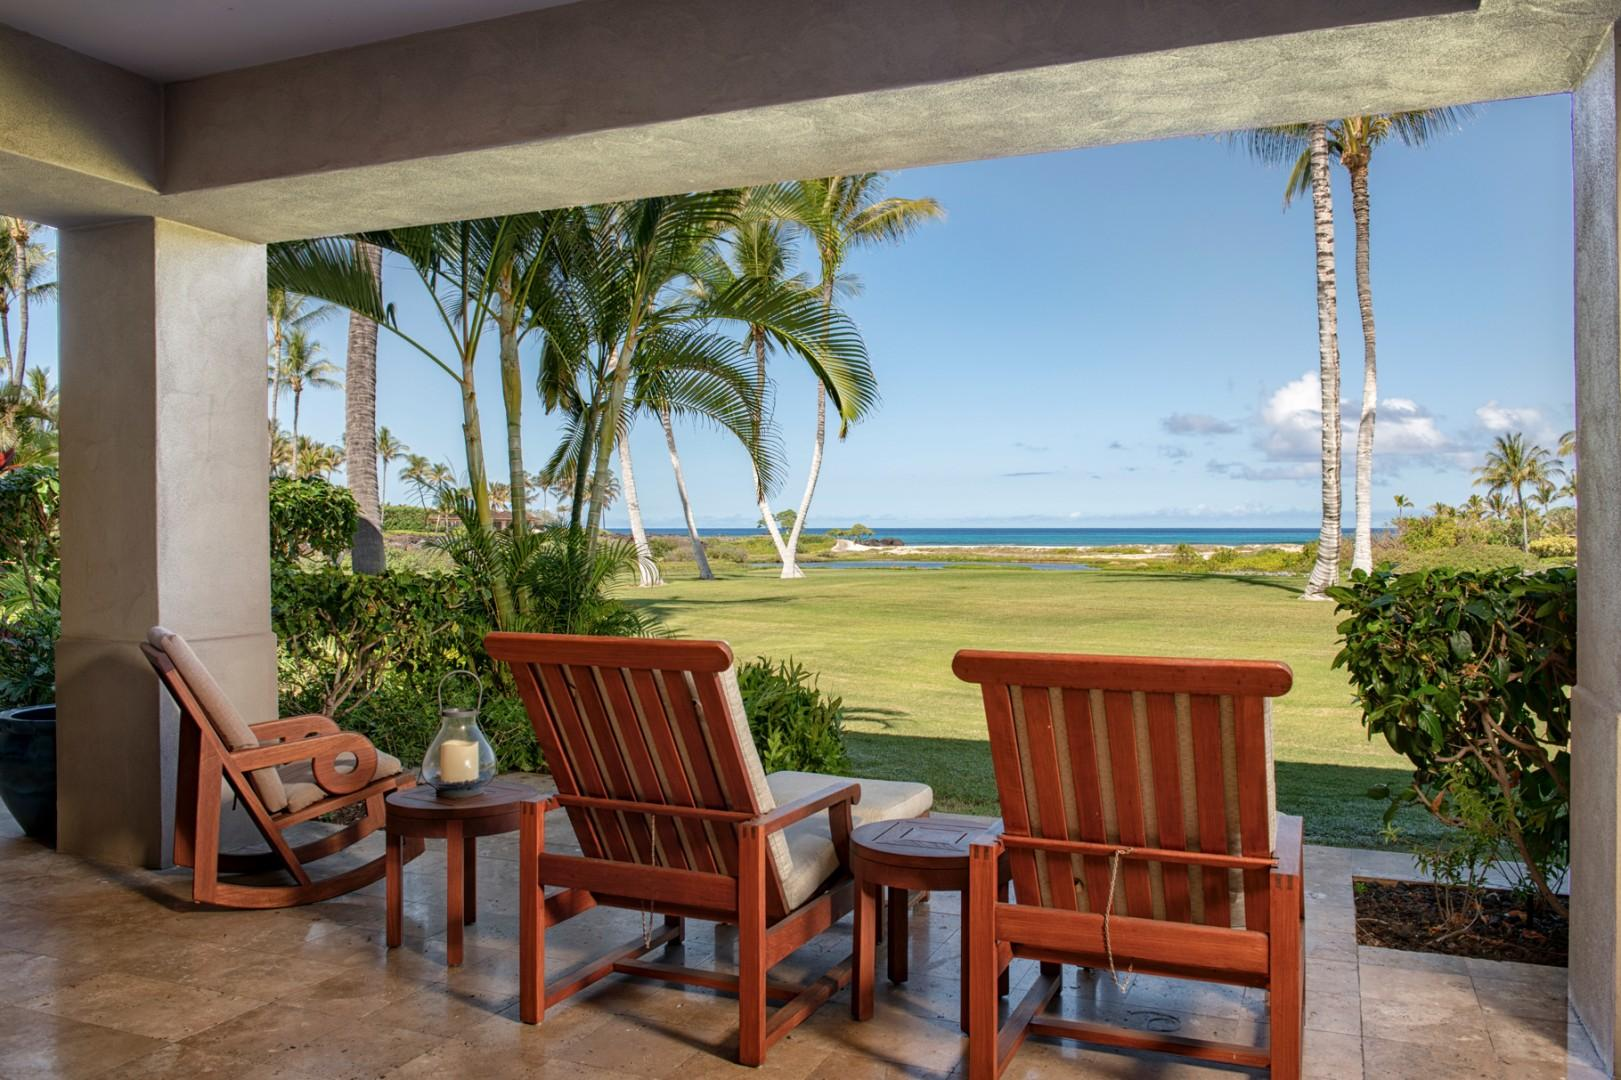 Closer view of lanai loungers with ocean views.